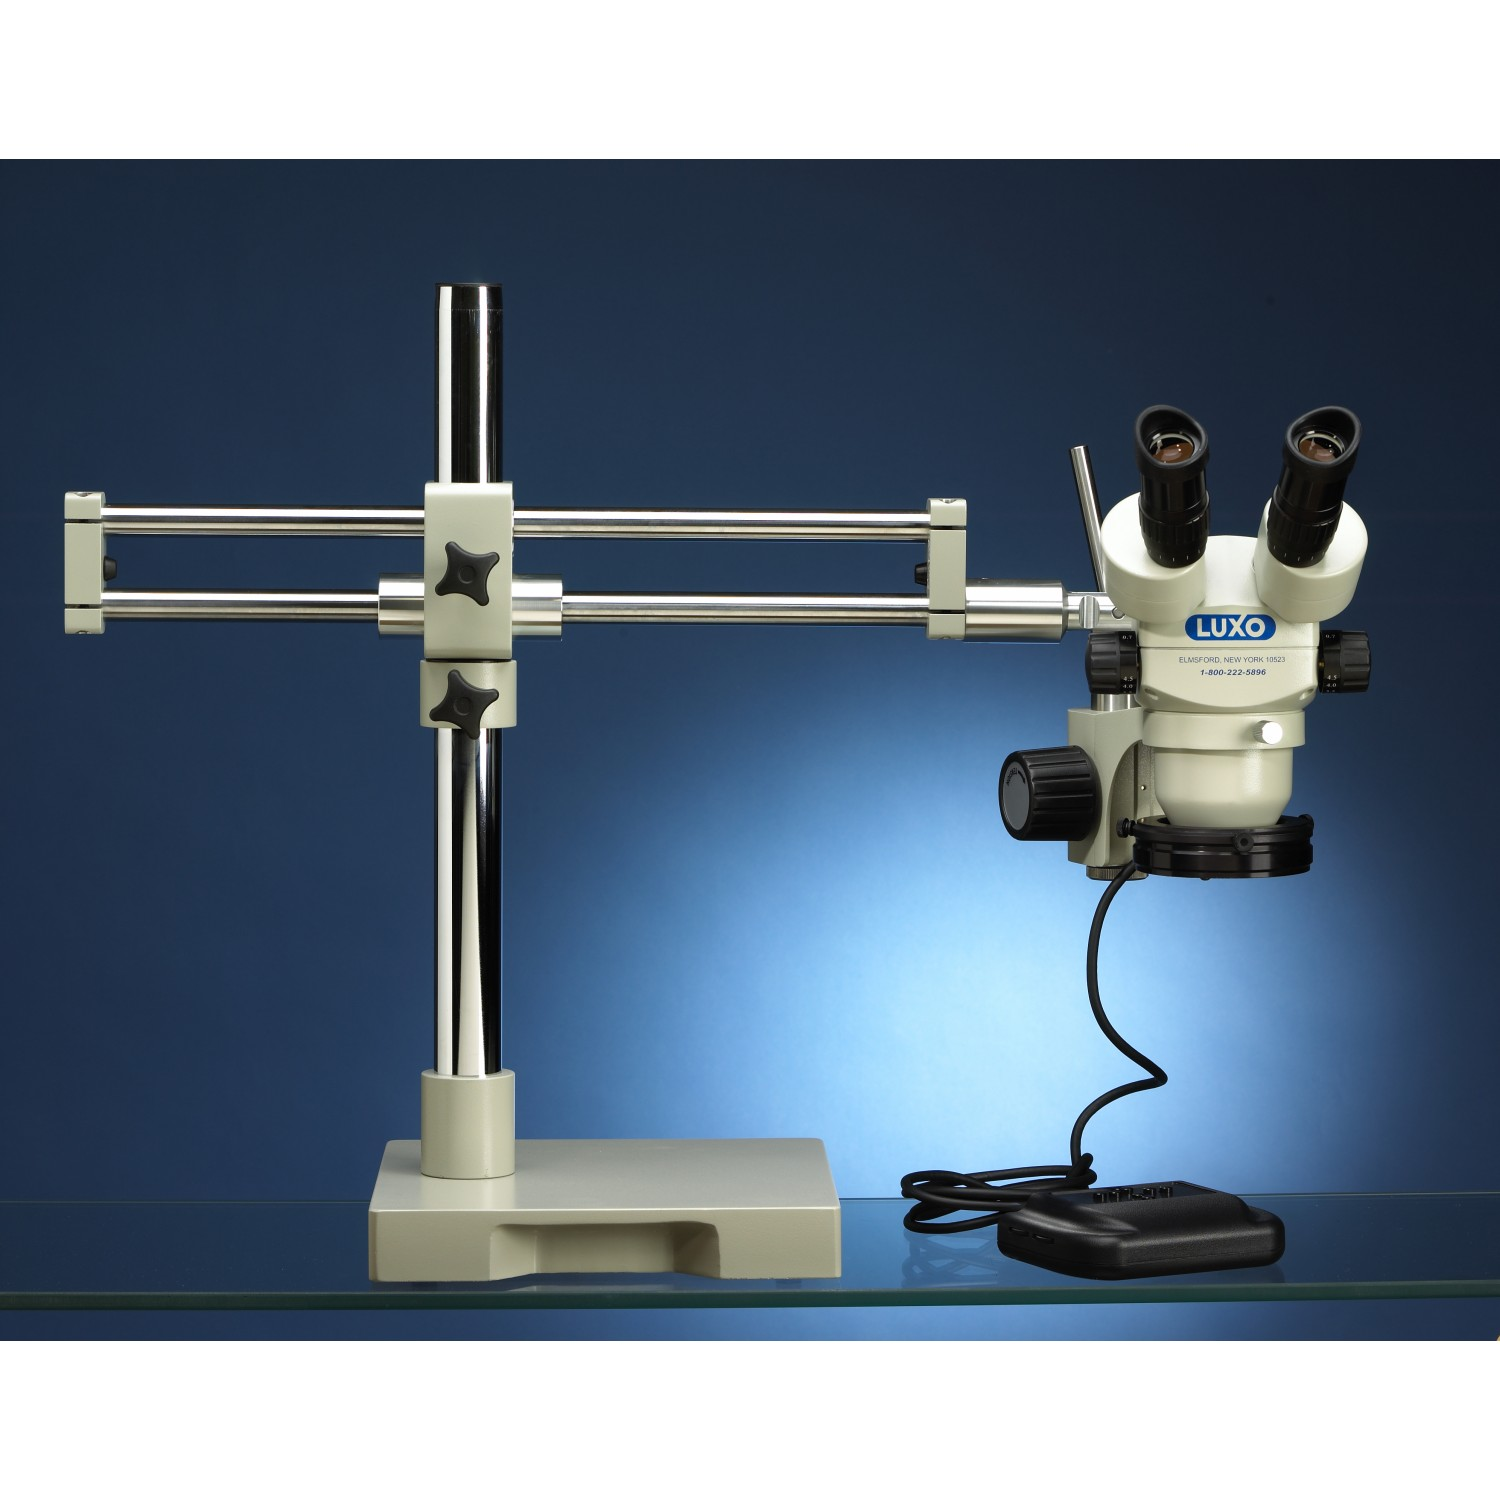 Luxo Microscope Syetem S-Z 23mm Binocular, RB Stand, Dimmable LED Ring Light